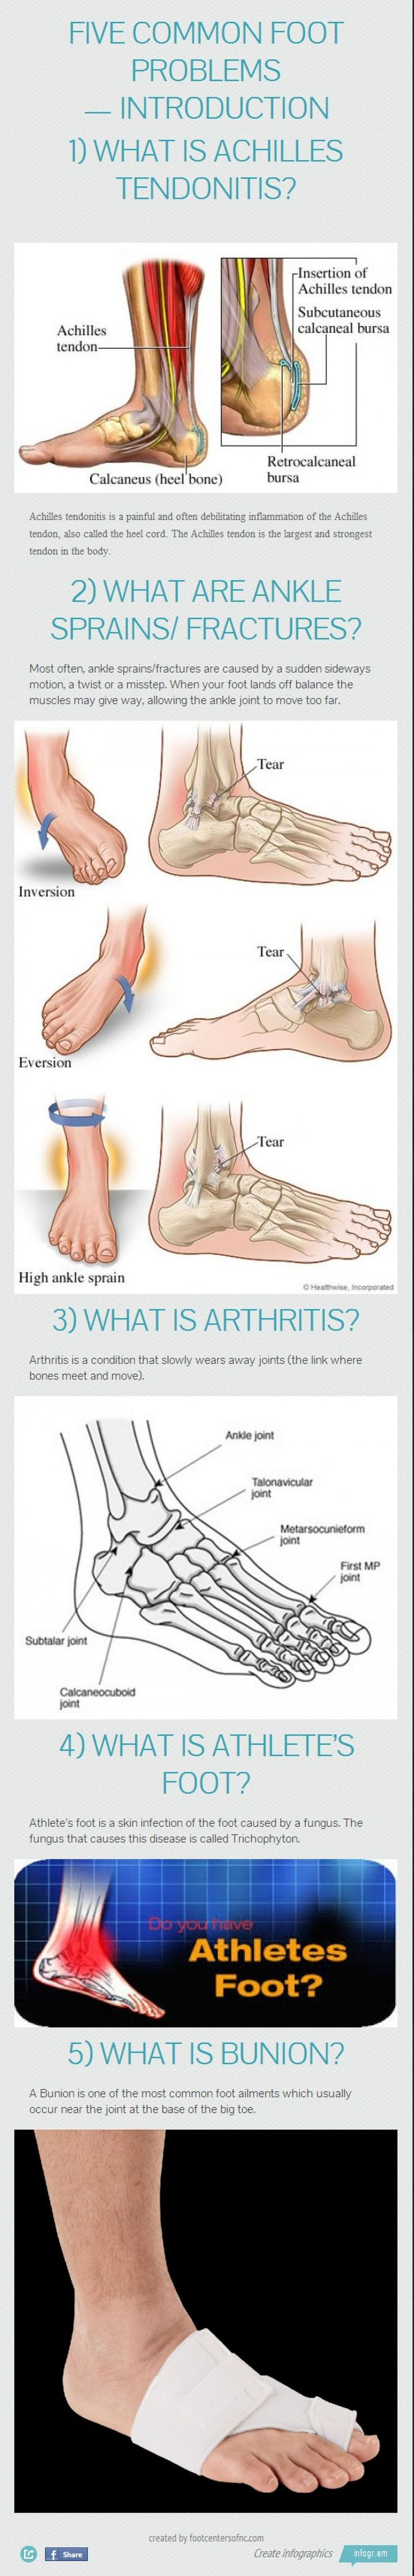 Five Common Foot Problems explained: arthritis, sprains, tendonitis and more. #podiatry